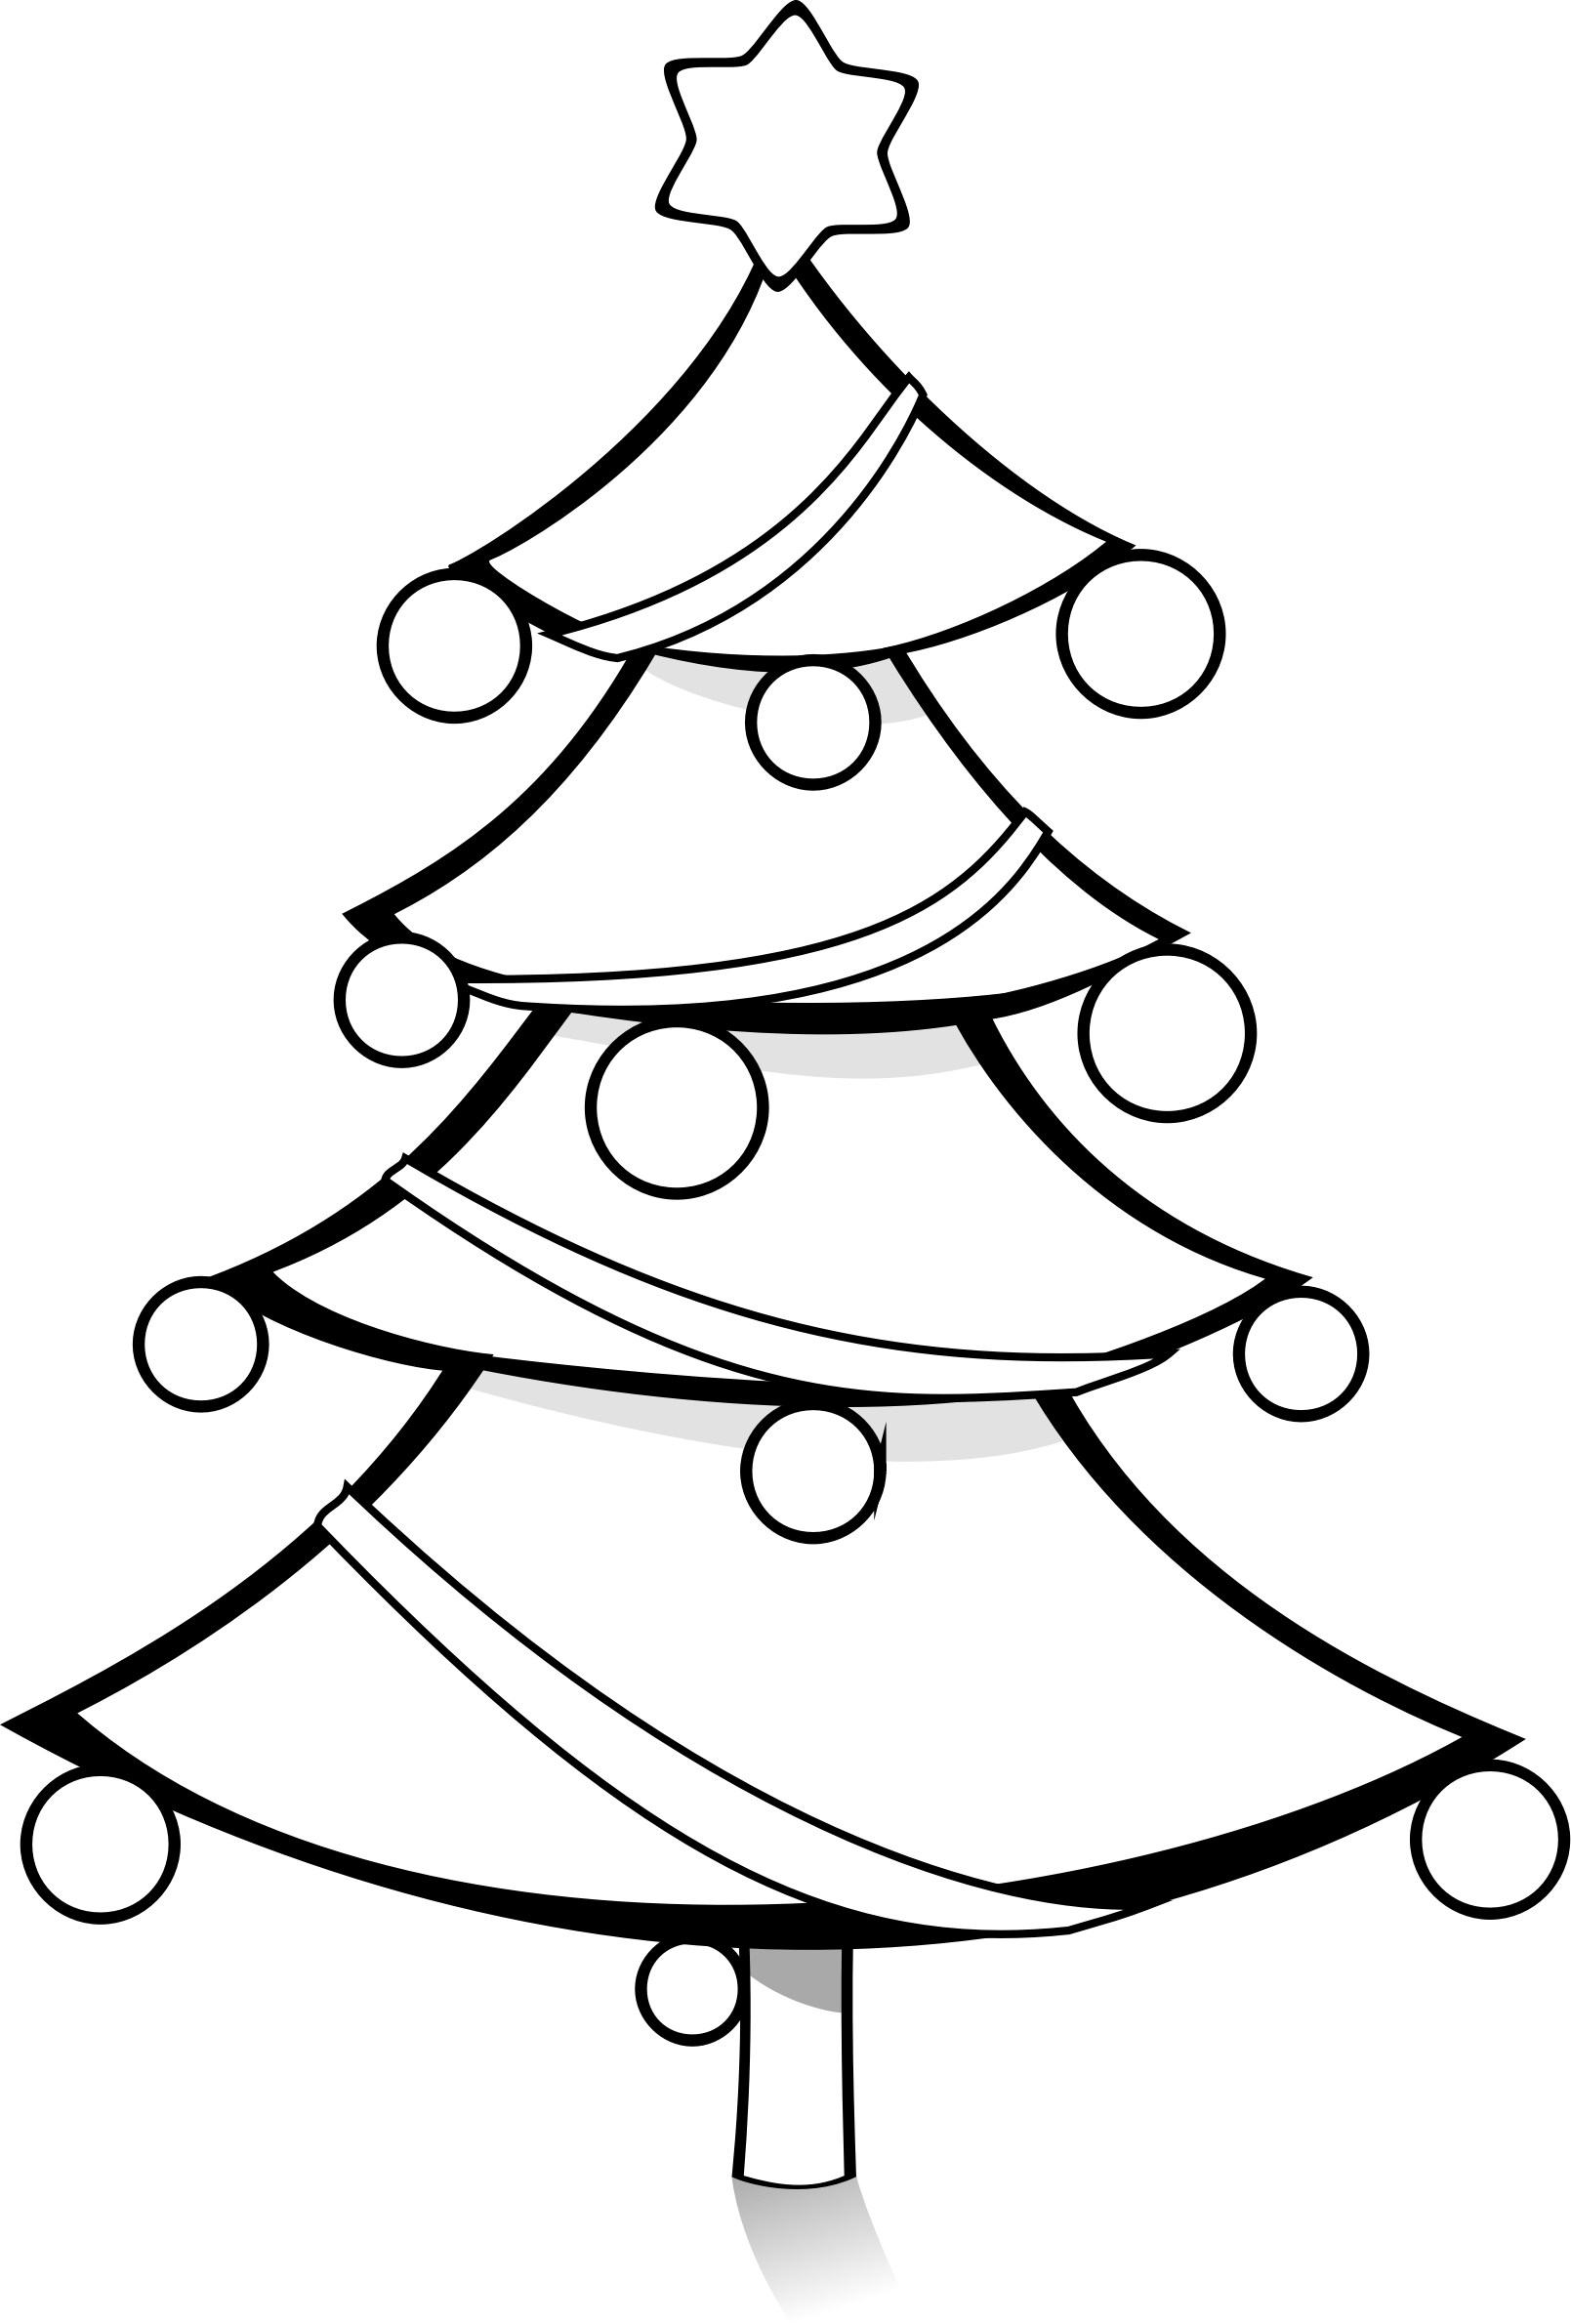 1609x2380 Christmas Tree Black And White Xmas Clipart 2